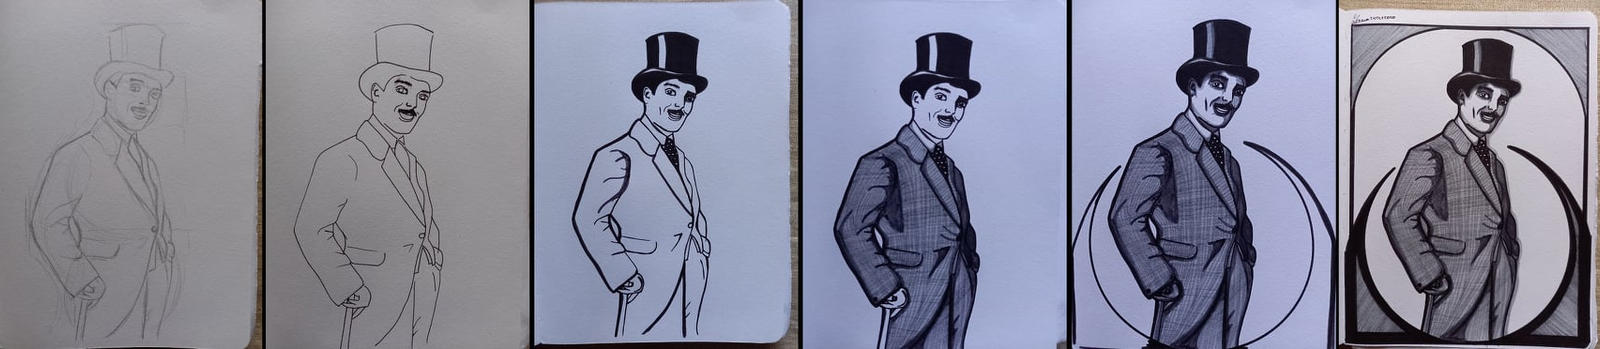 step-by-step of Max Linder portrait